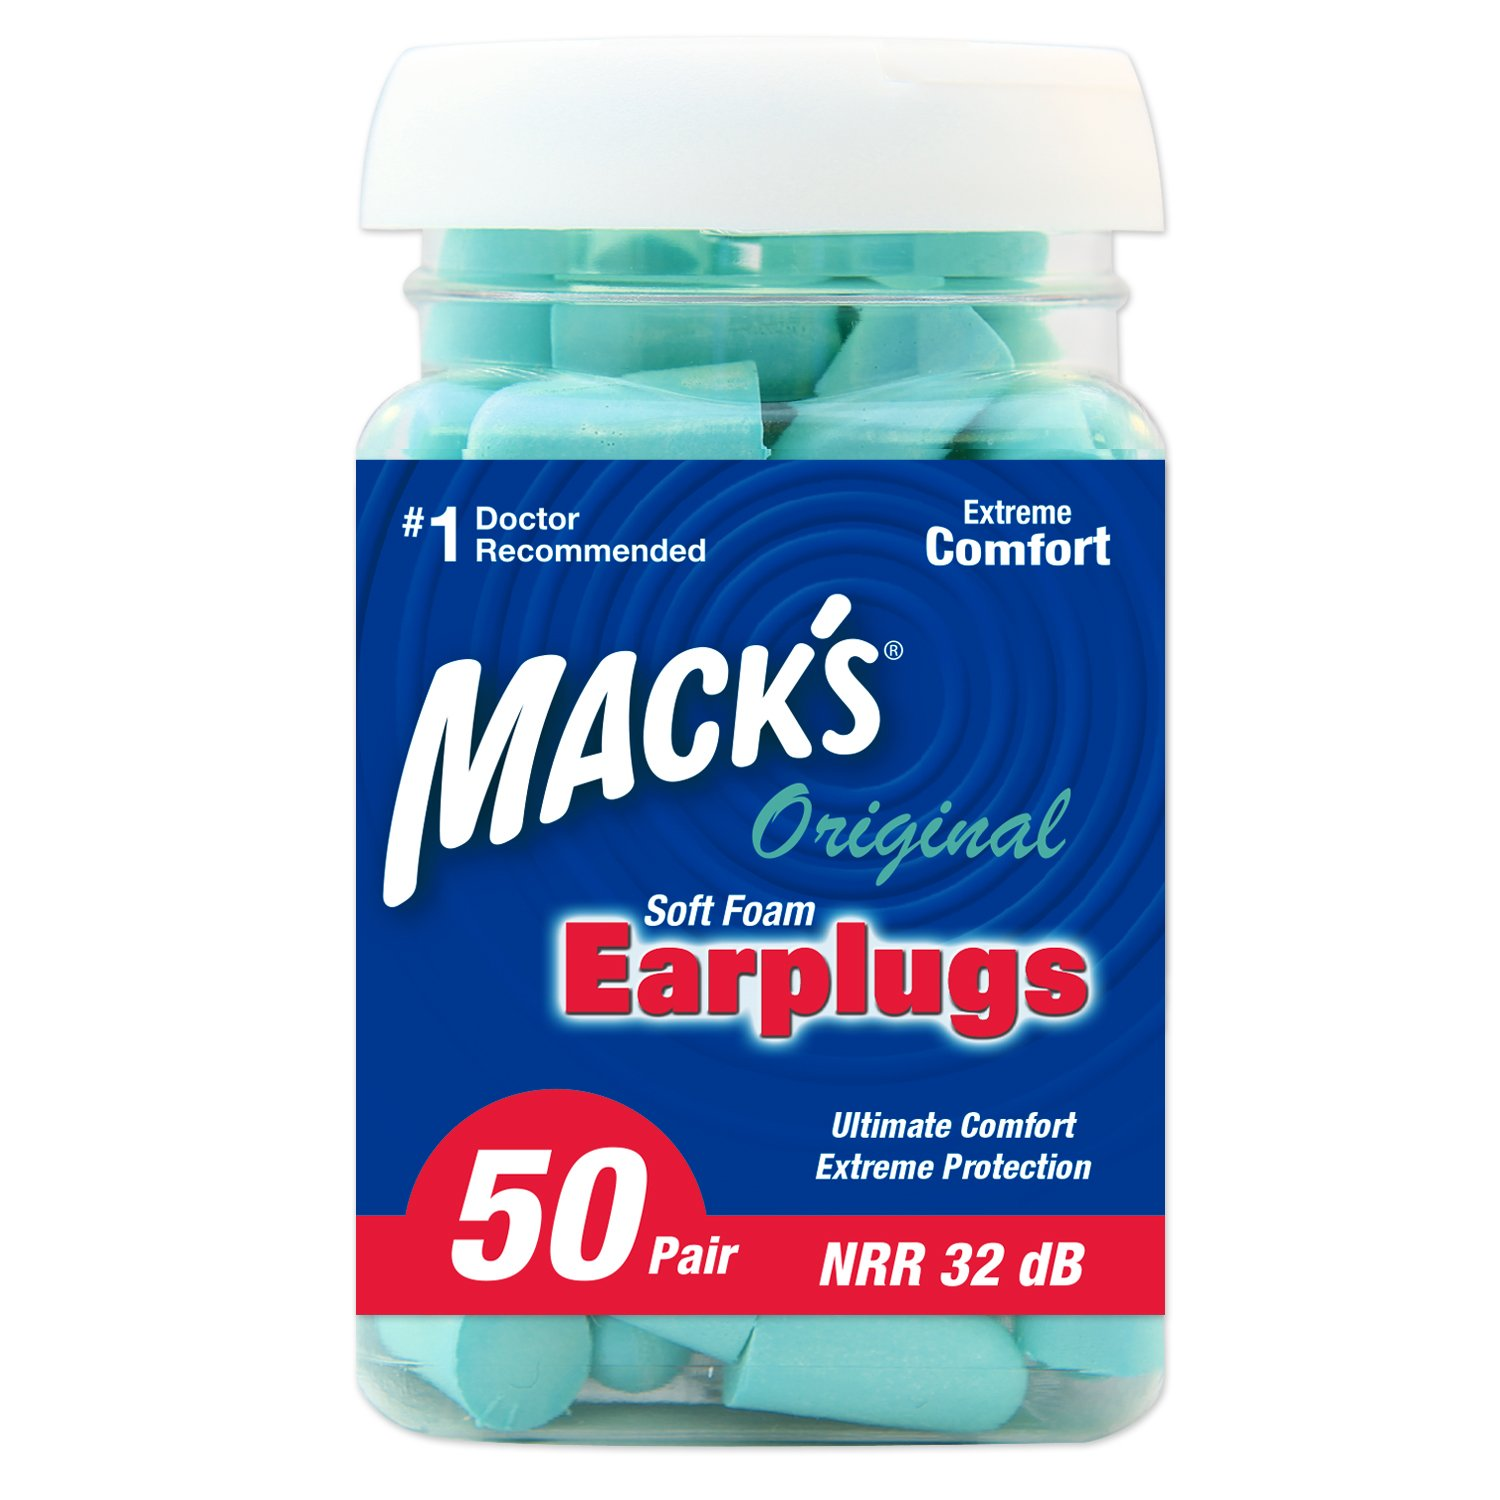 Mack's Original Soft Foam Earplugs, 50 Pair - 32dB Highest NRR, Comfortable Ear Plugs for Sleeping, Snoring, Work, Travel and Loud Events